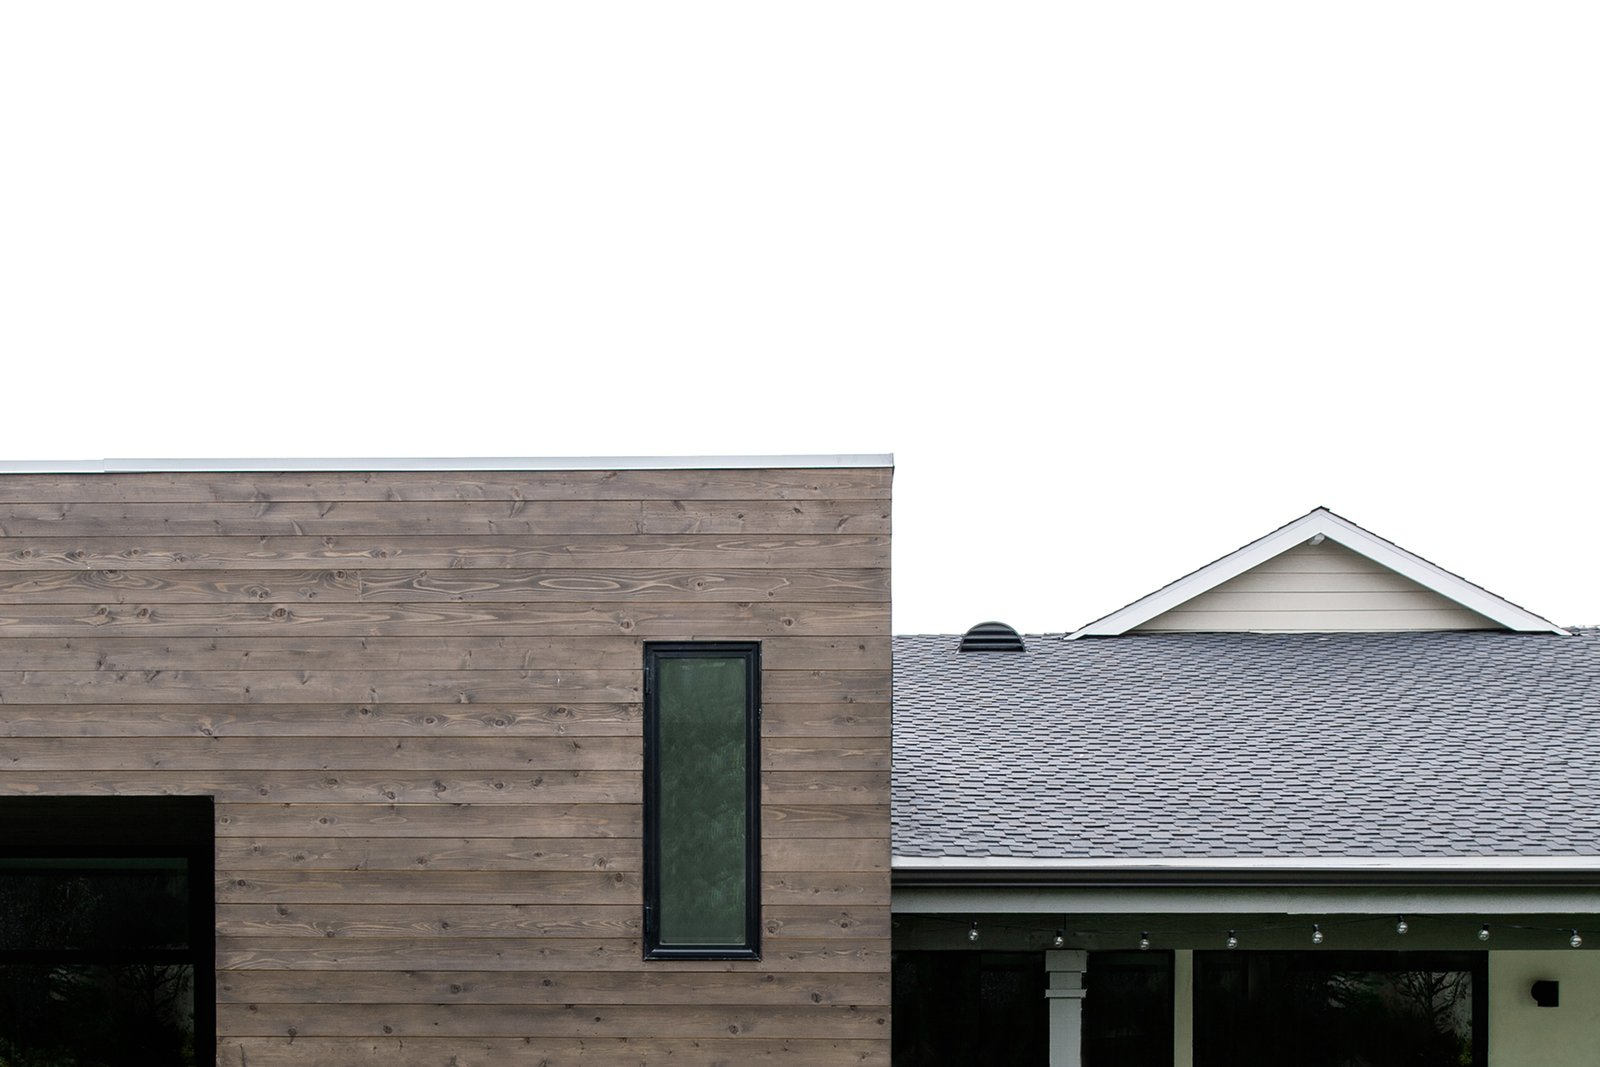 cedar cladding + flat roof at rear addition  [villa park modern addition + renovation, california]